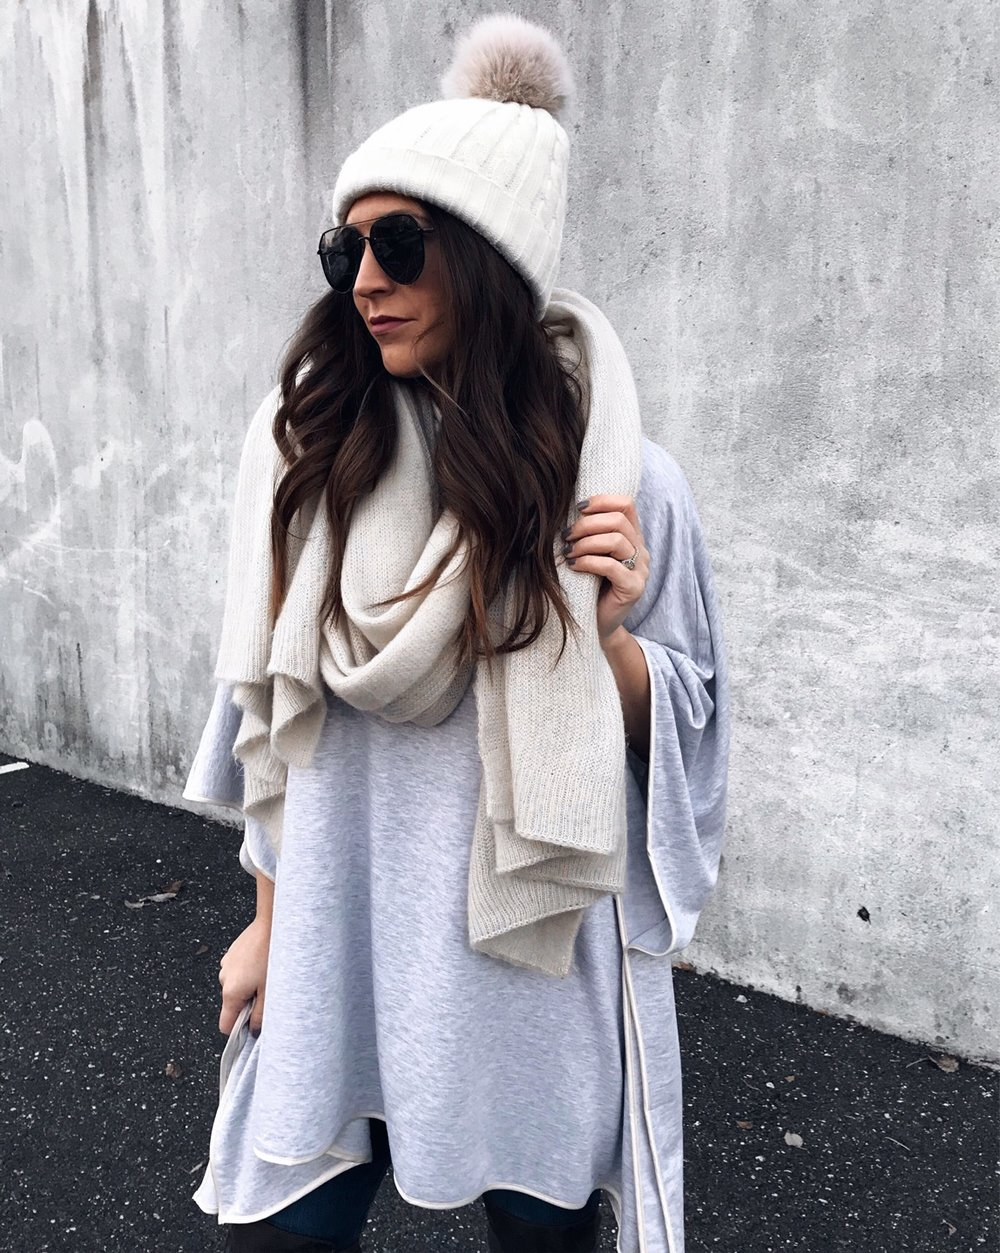 Weekend Sales + Free Shipping Day | Pine Barren Beauty | winter fashion, winter outfit idea, winter outfit inspiration, cozy sweater, sweater weather, Lou and grey poncho, hair goals, hair vibes